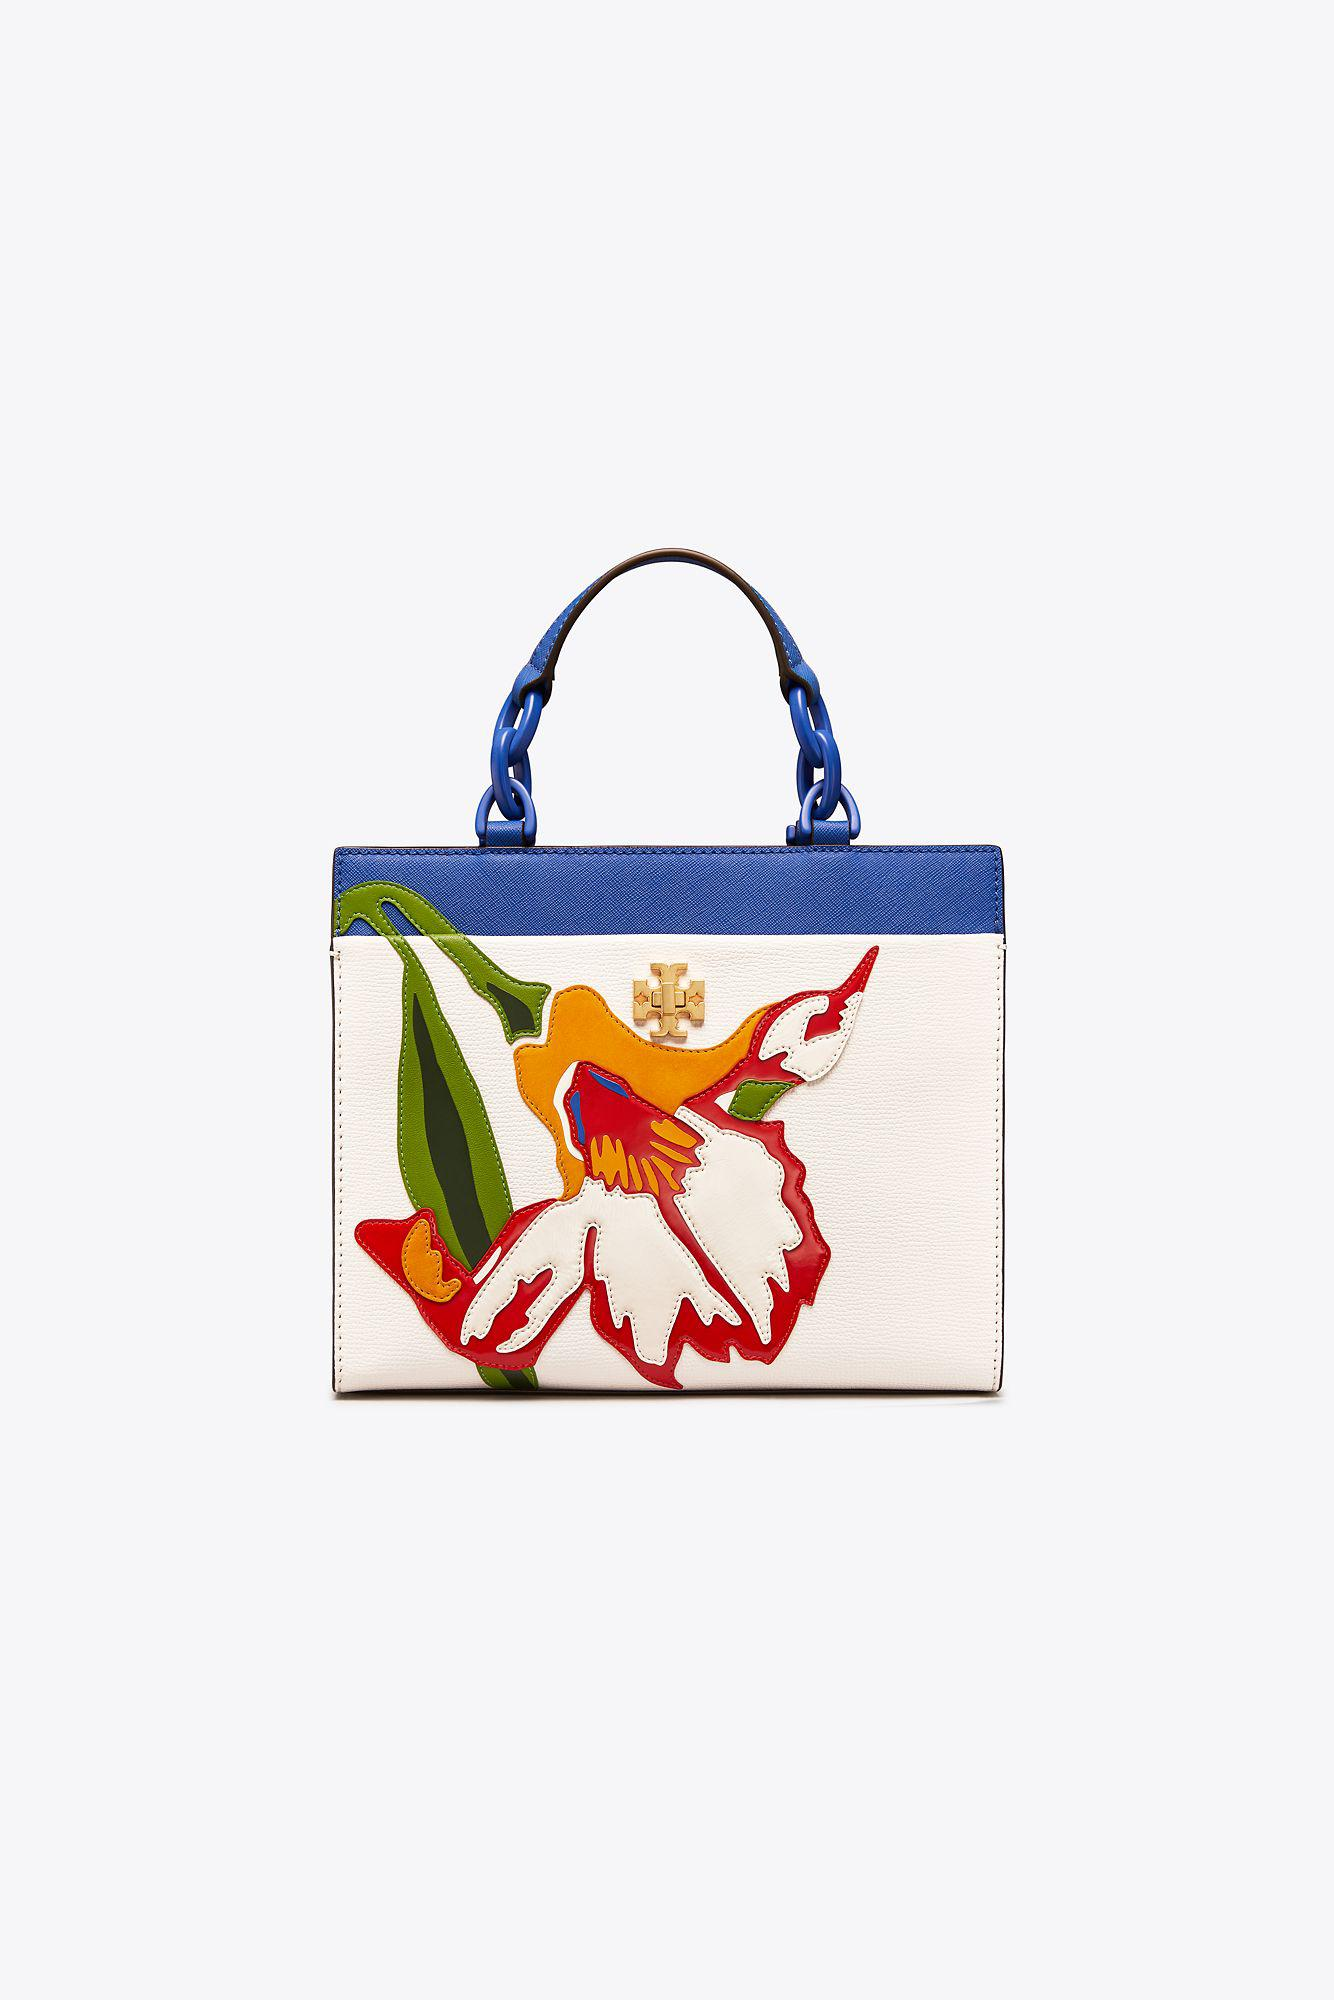 64051828bd4e Lyst - Tory Burch Kira Floral Small Tote in Blue